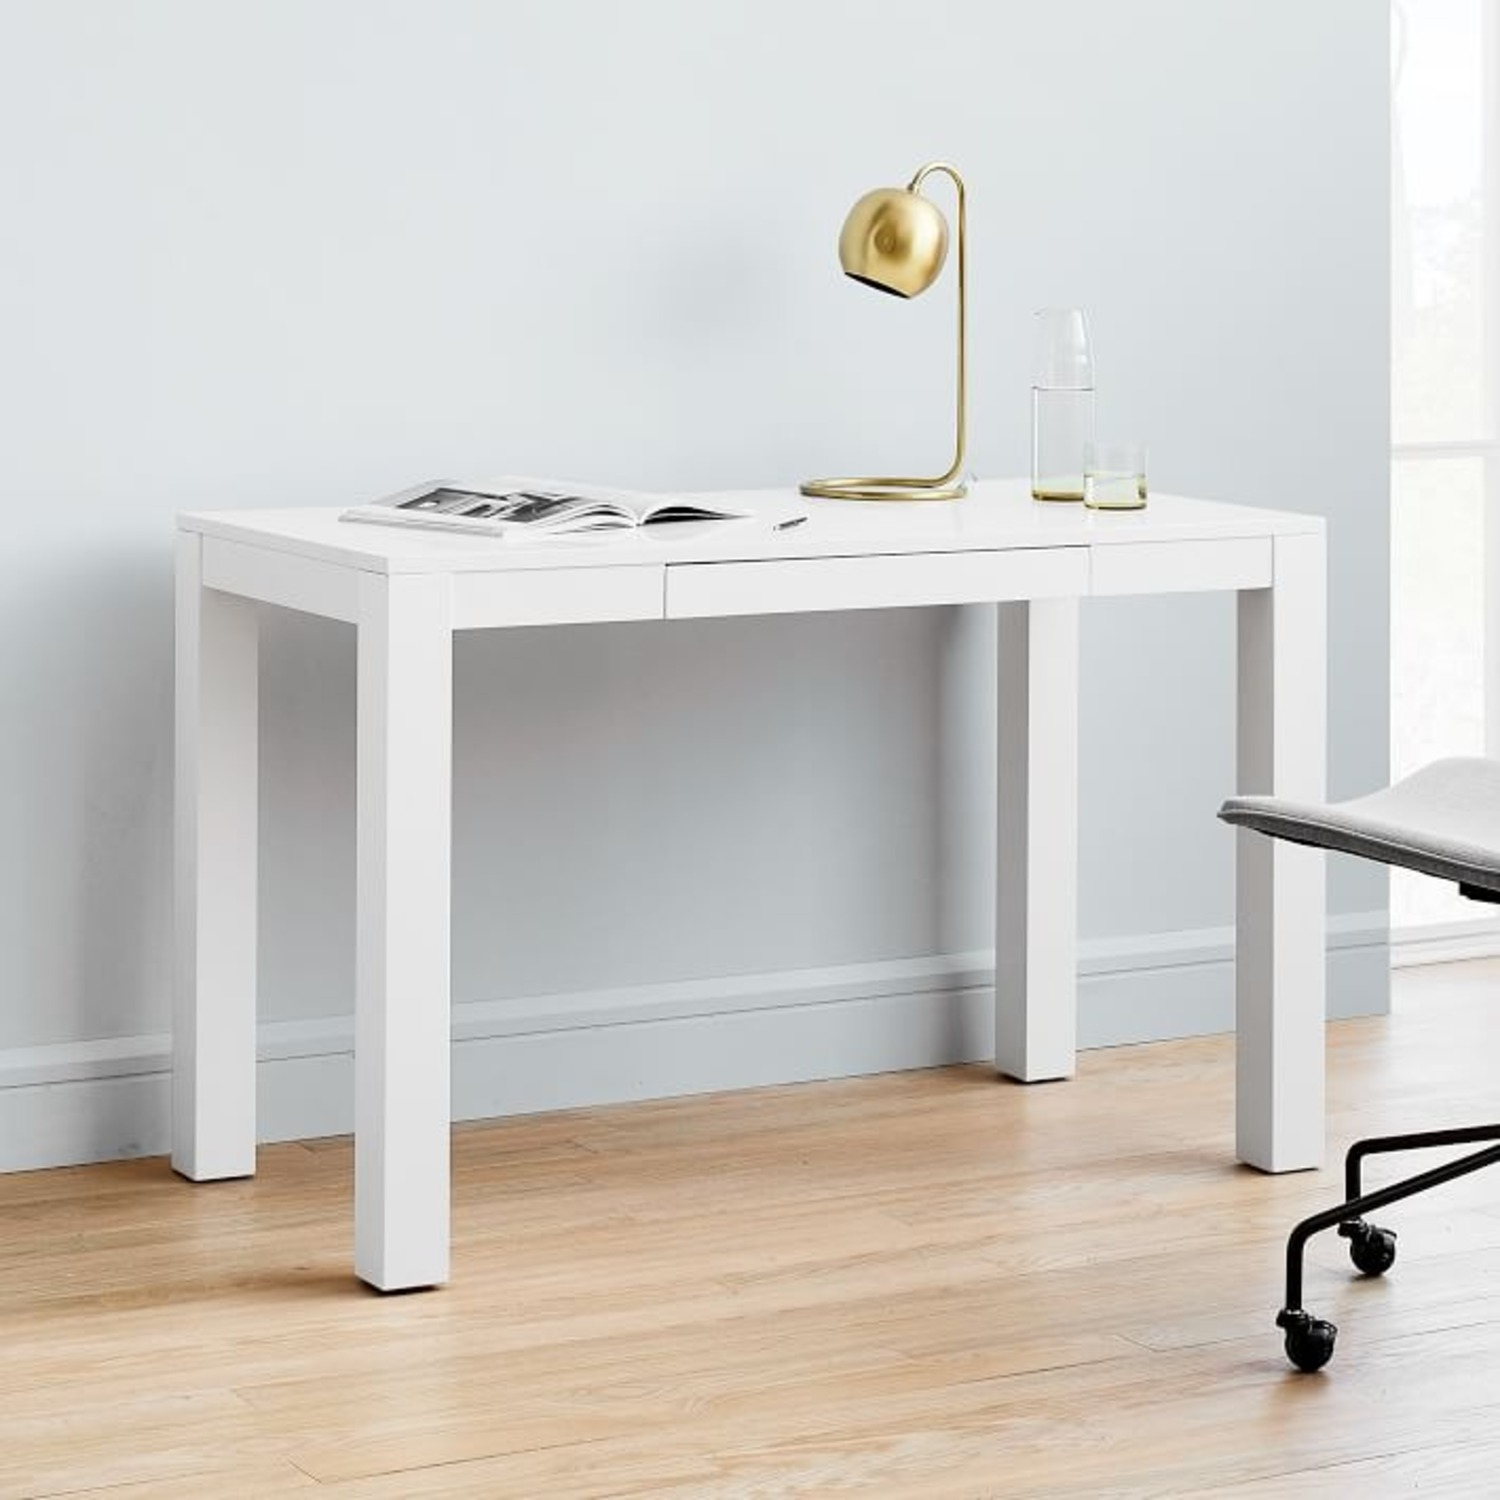 West Elm Parsons Desk With Drawers, White - image-3